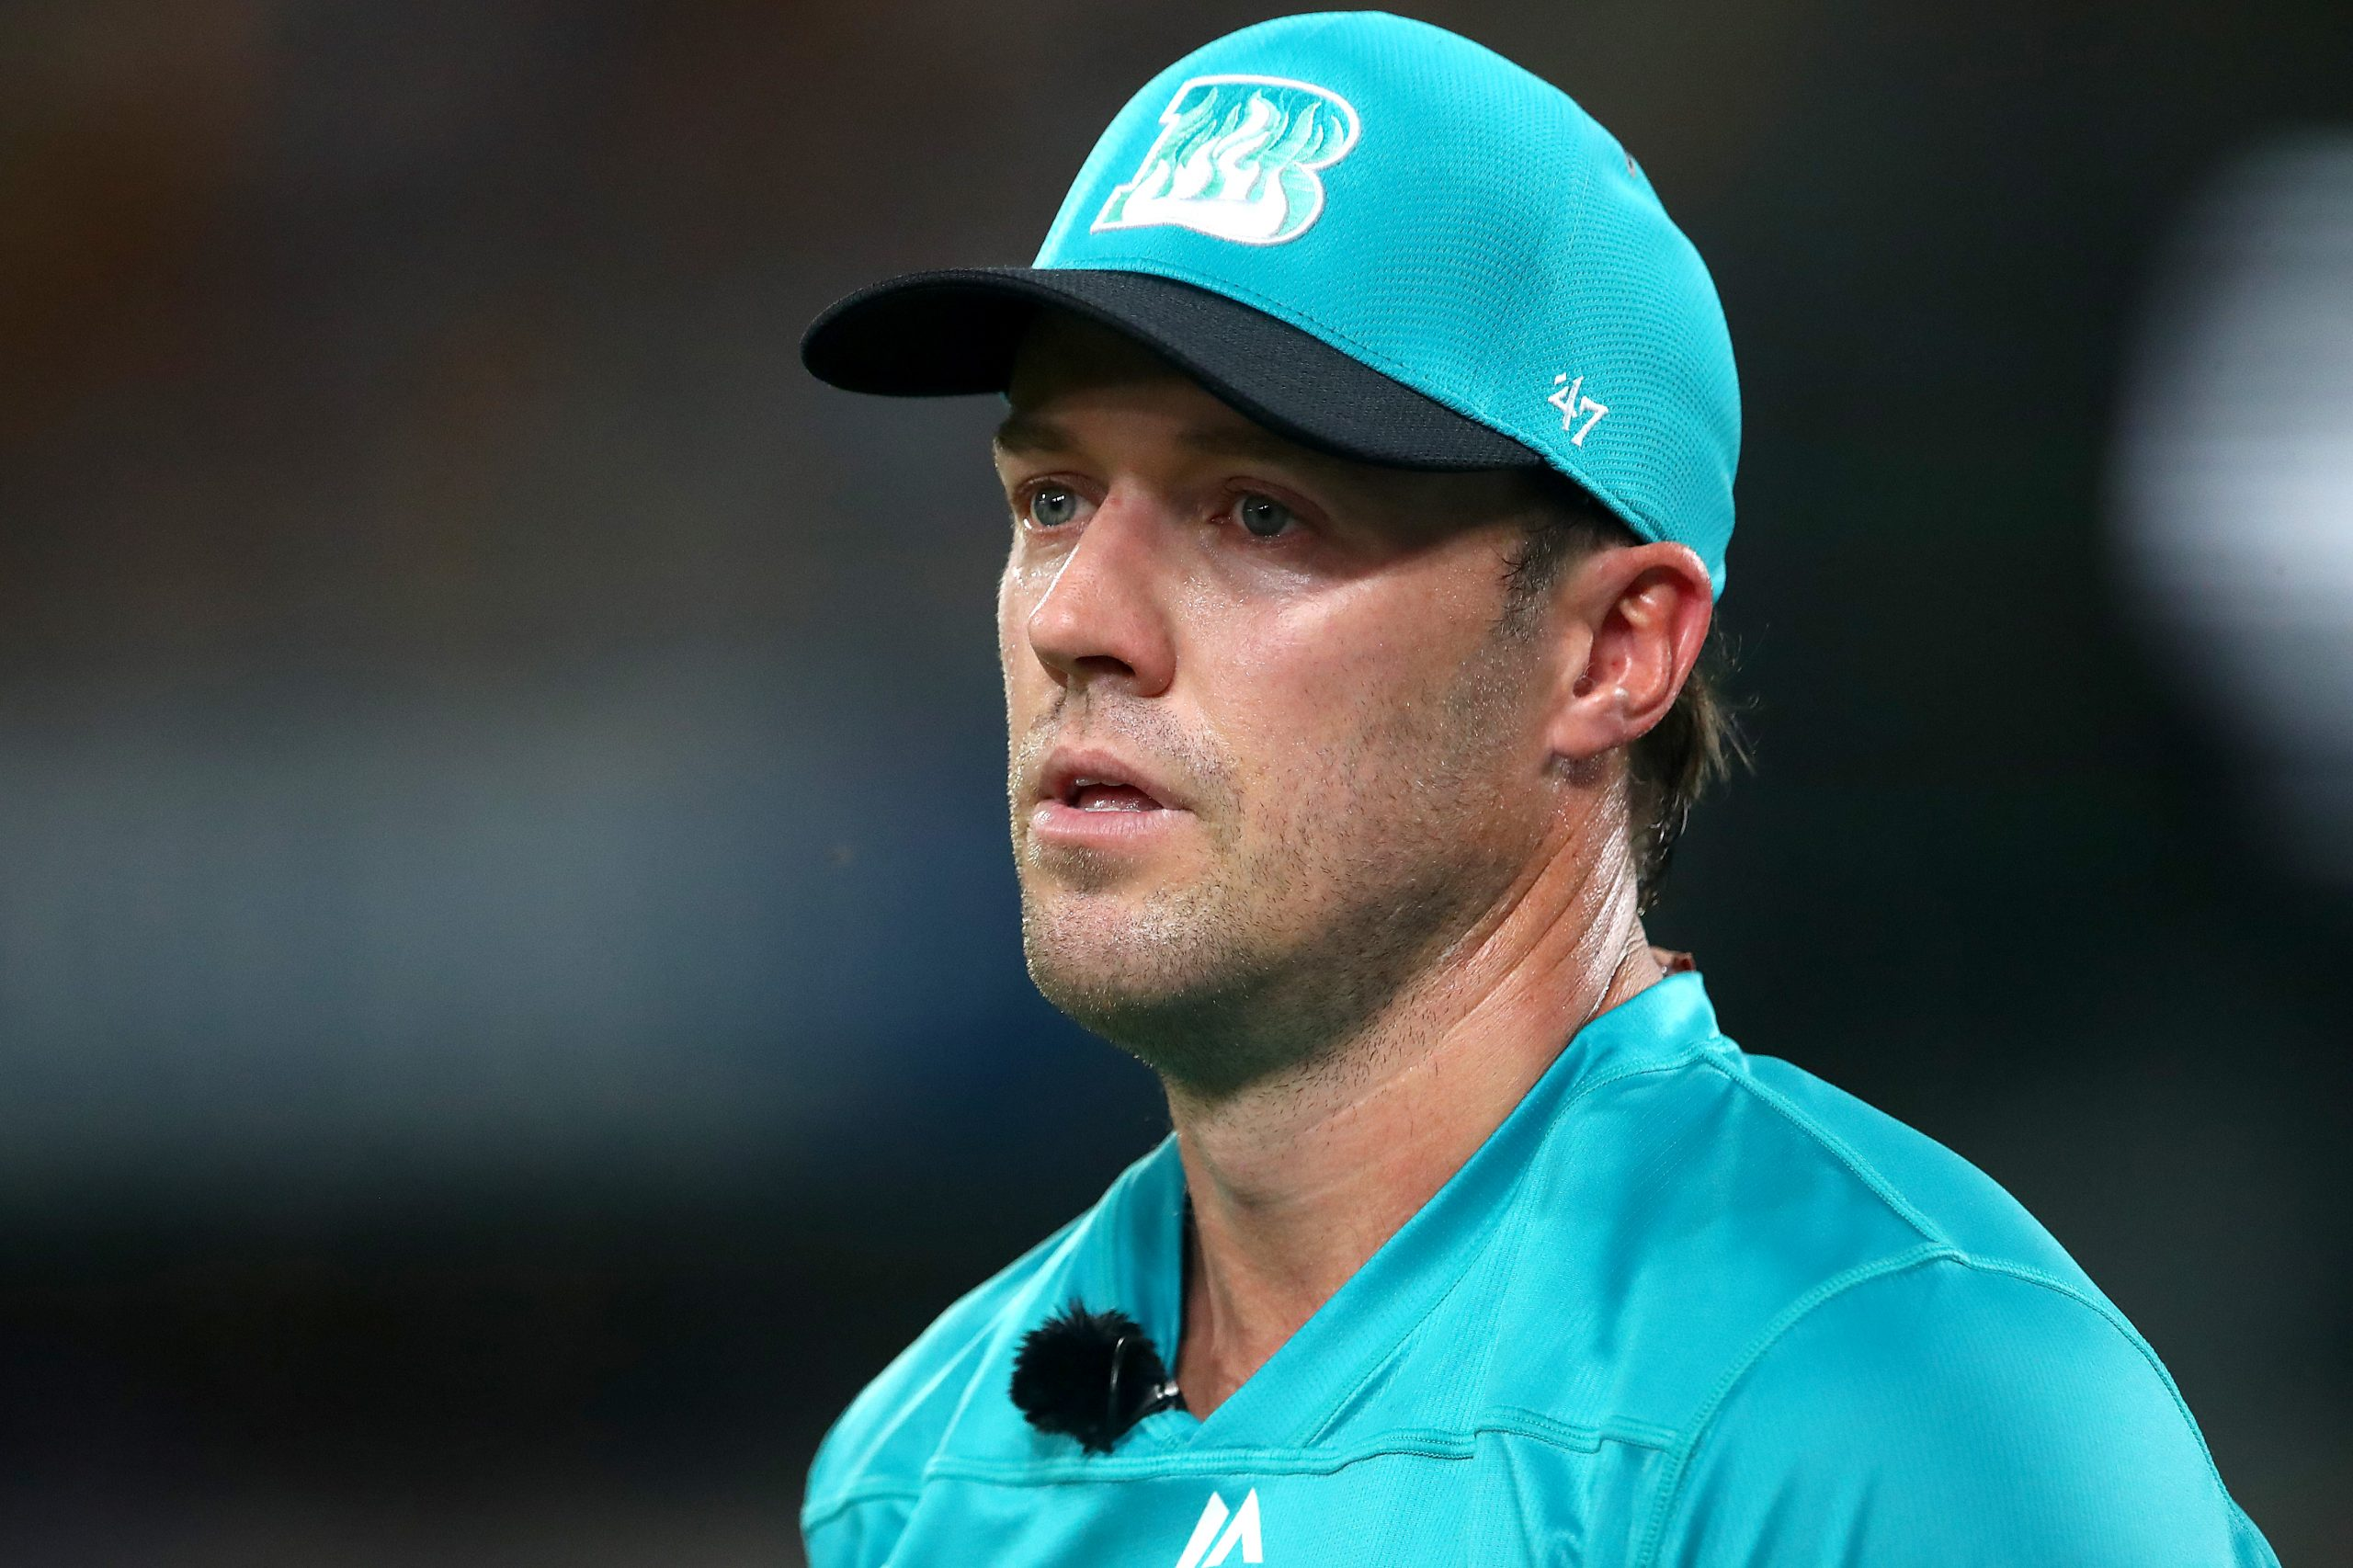 AB de Villiers (Photo by Jono Searle/Getty Images)